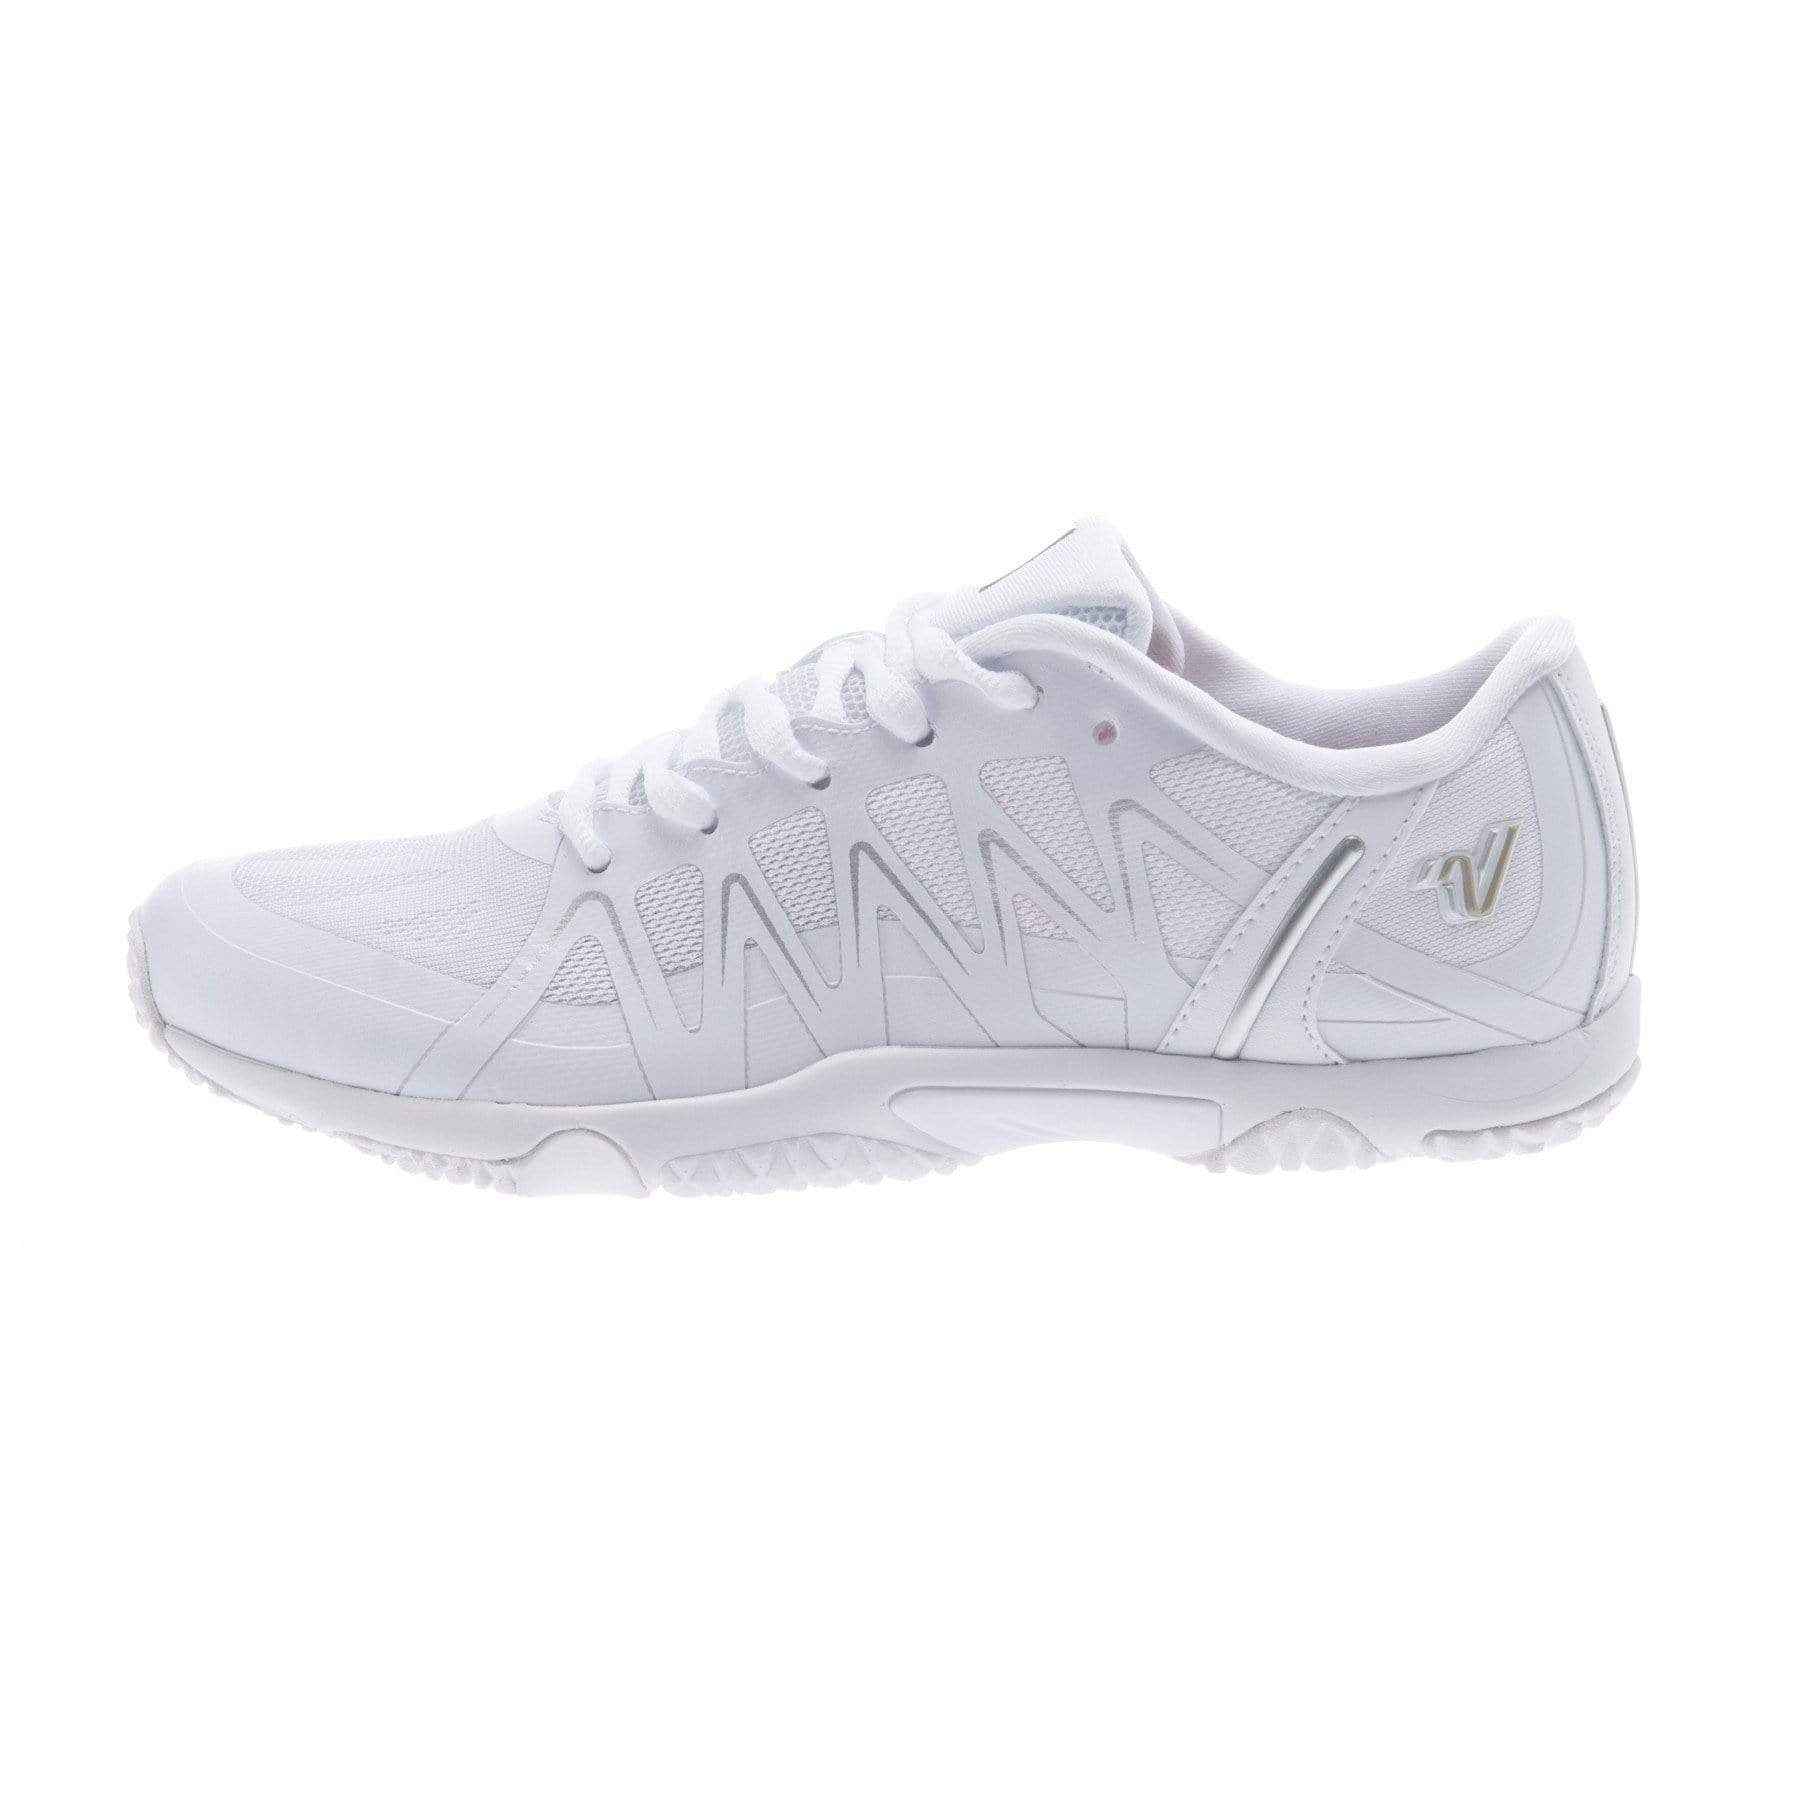 Varsity Edge Cheer Shoes | Top-Rated